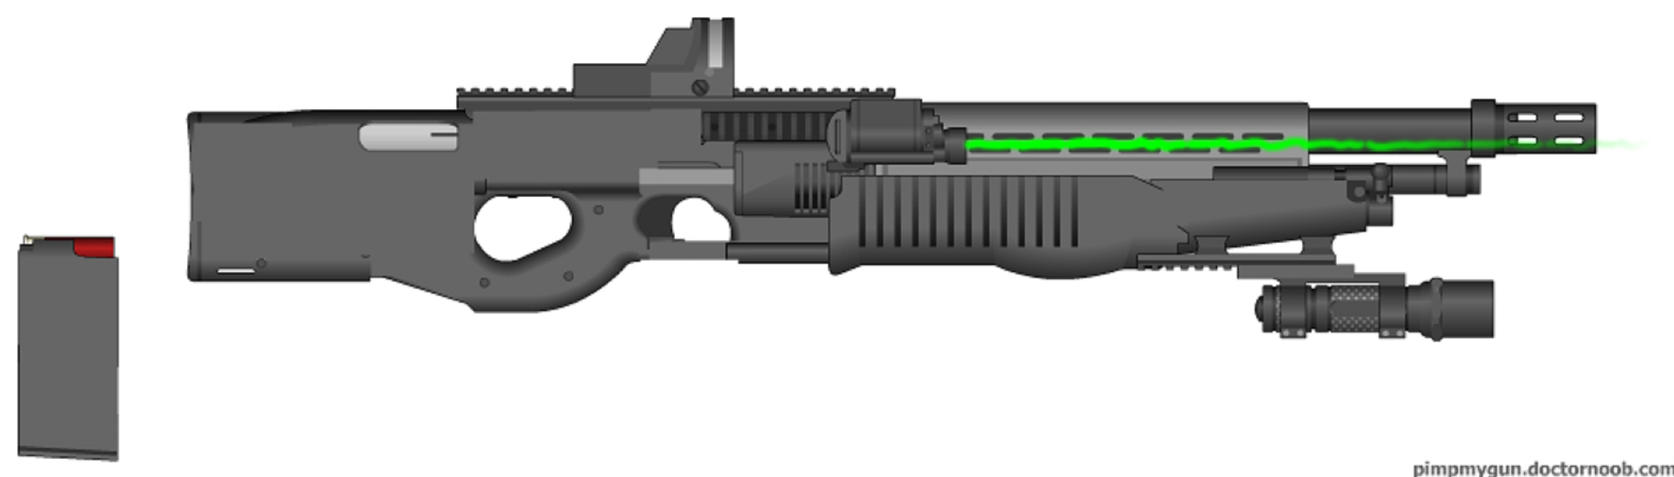 S70G Advanced Auto Shotgun by Marksman104